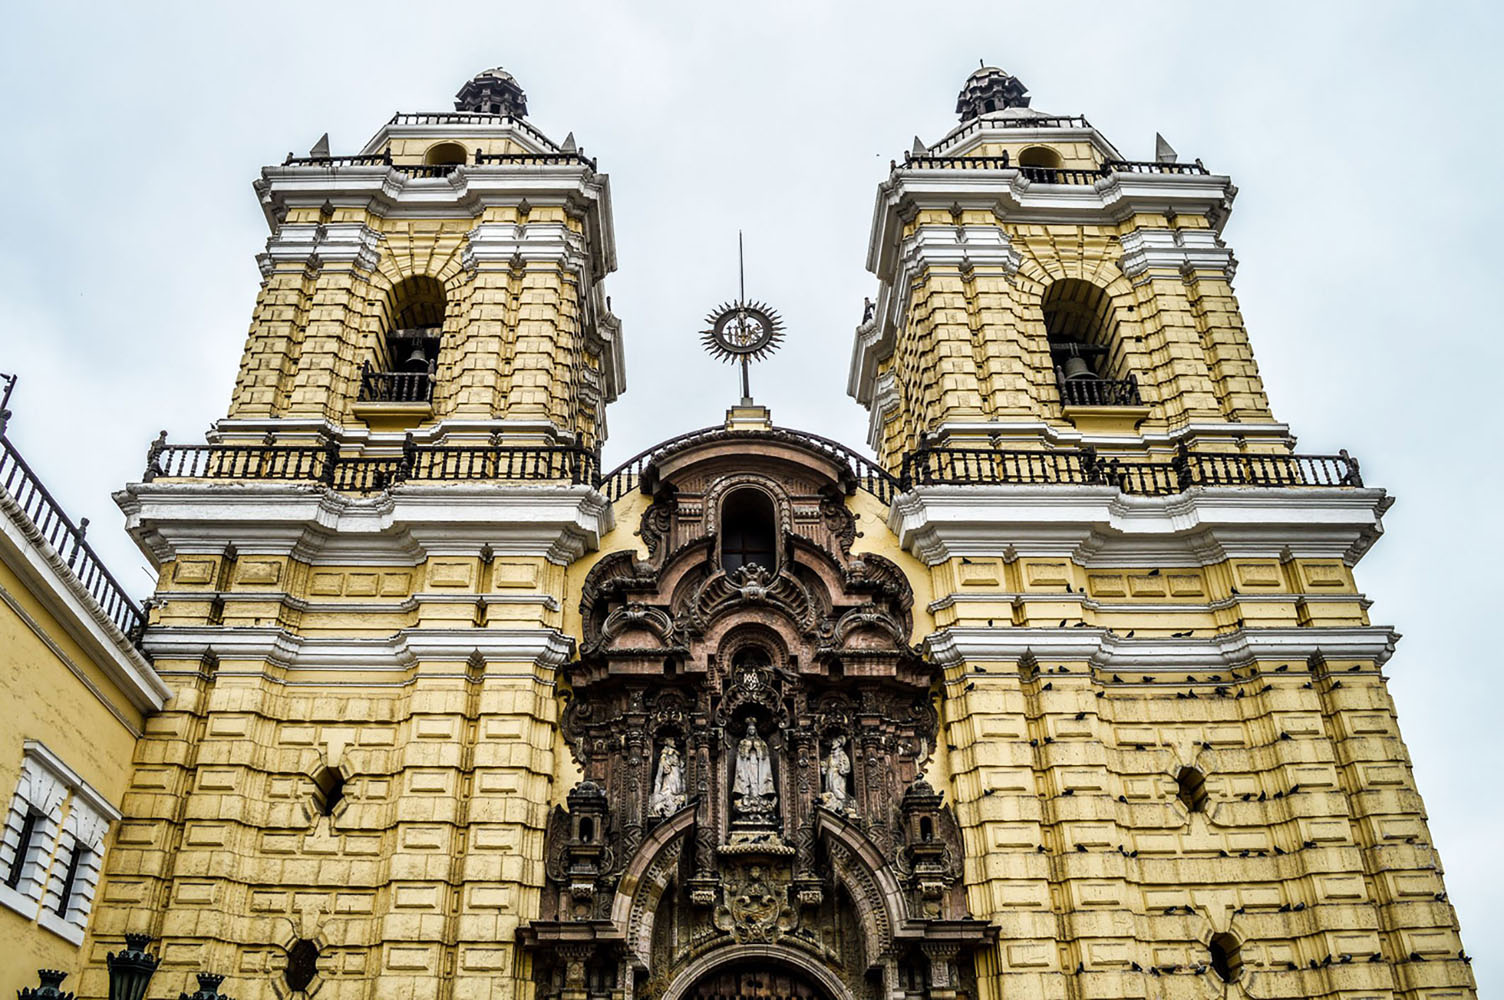 The yellow exterior of the Monasterio de San Francisco in Lima